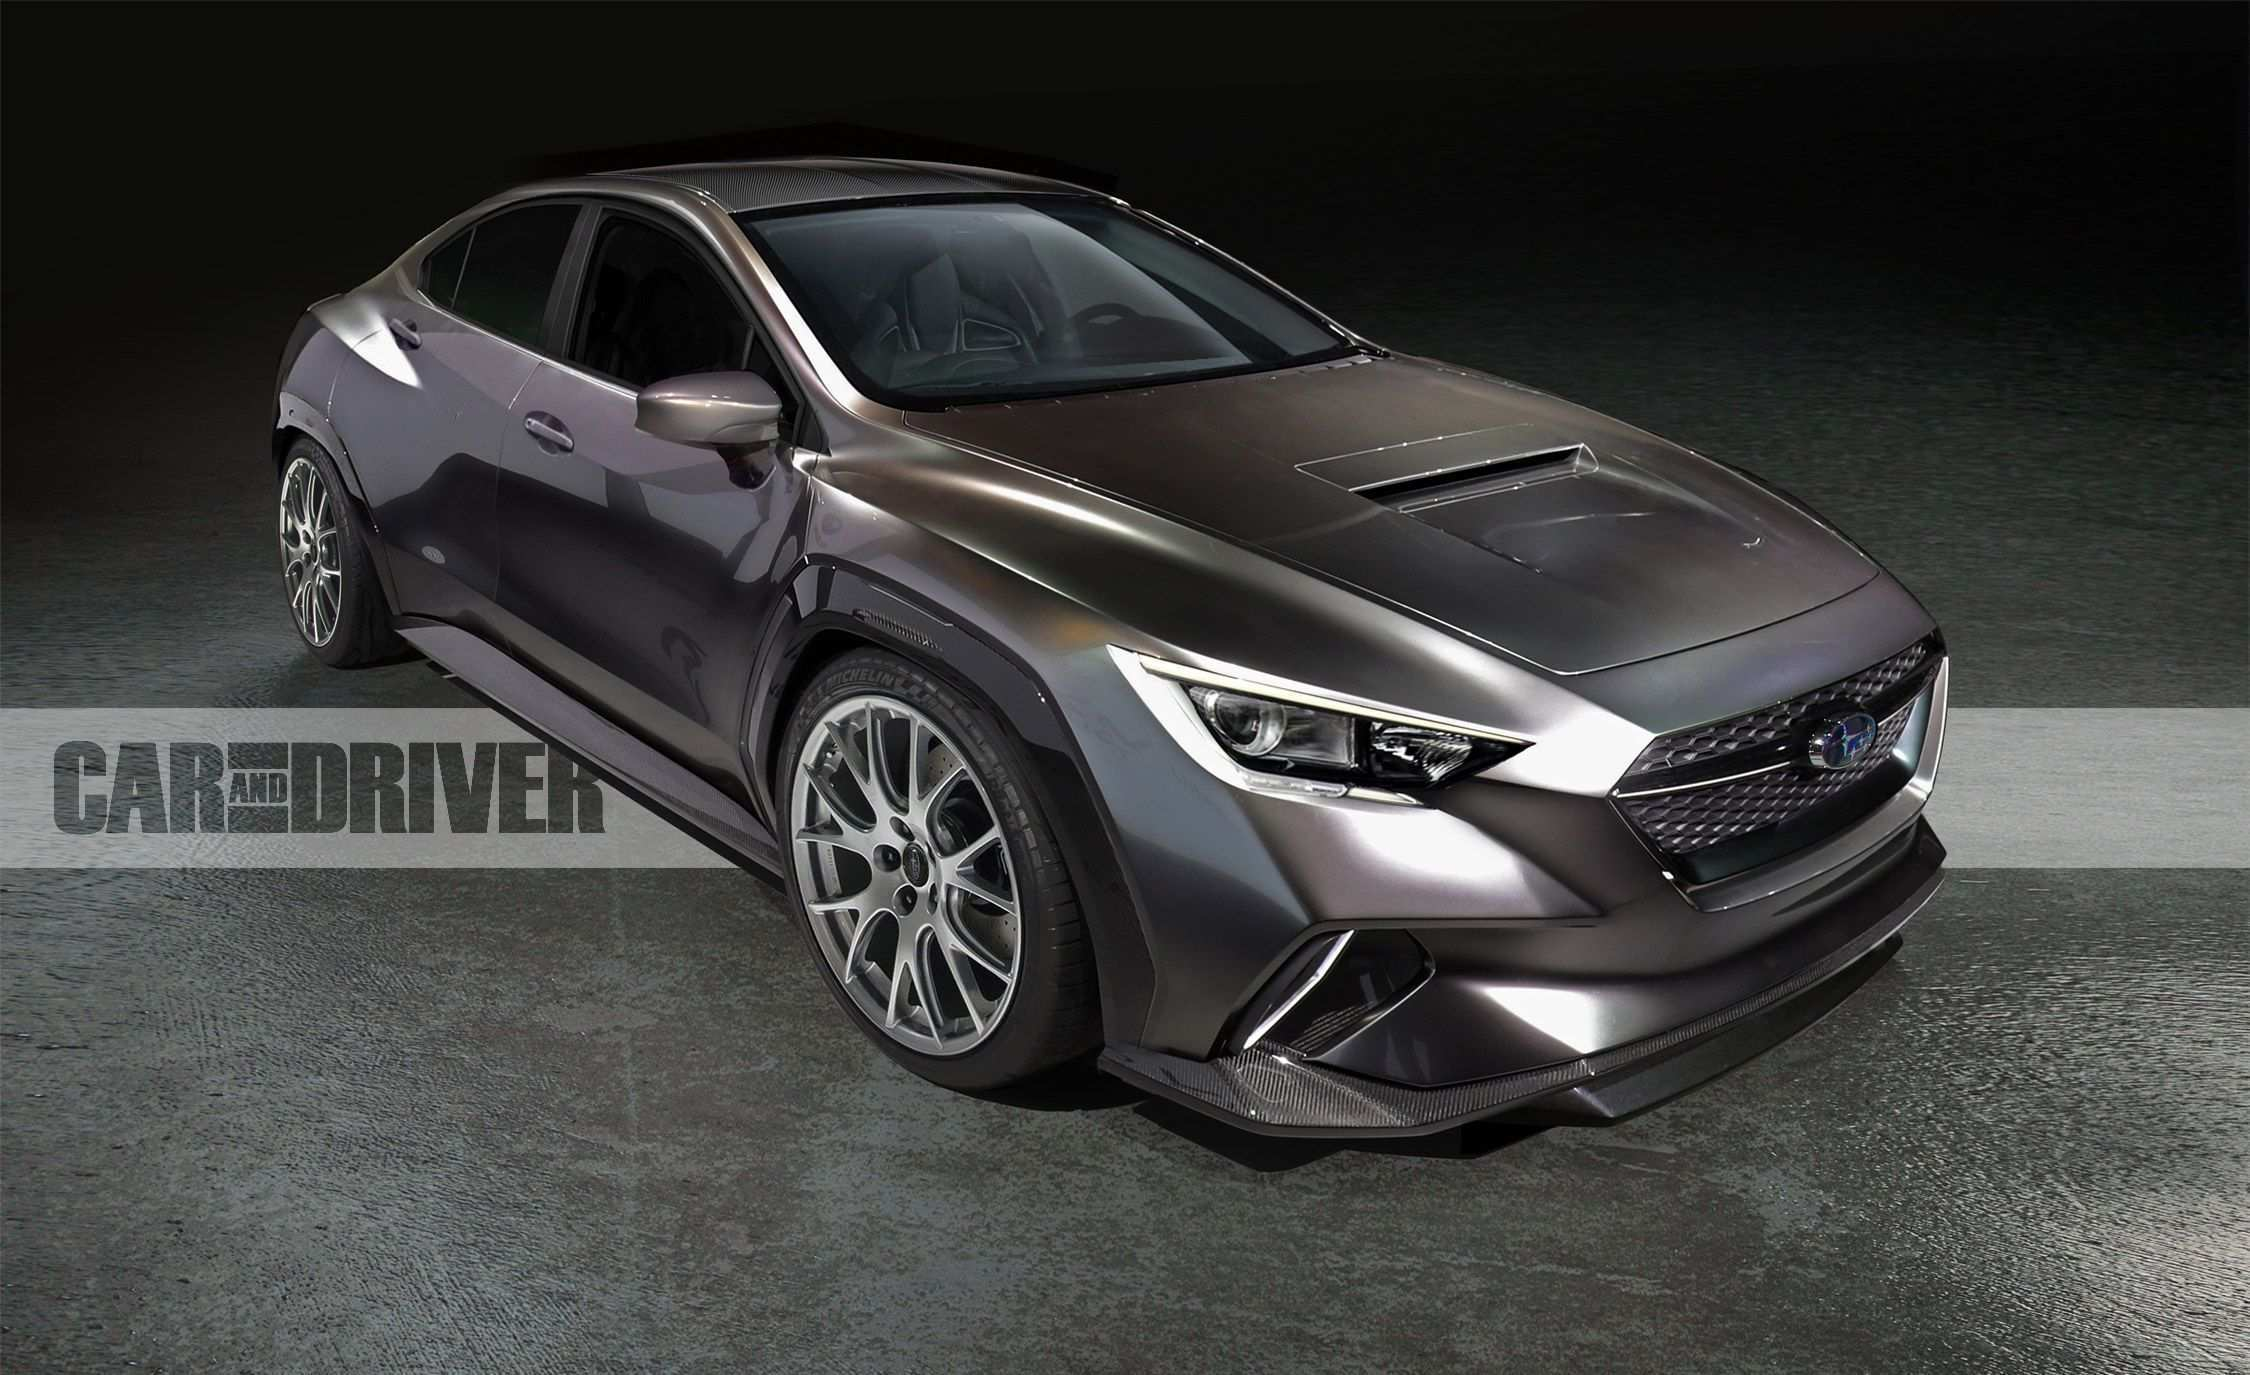 19 Concept of 2020 Subaru Wrx Hatchback Style for 2020 Subaru Wrx Hatchback